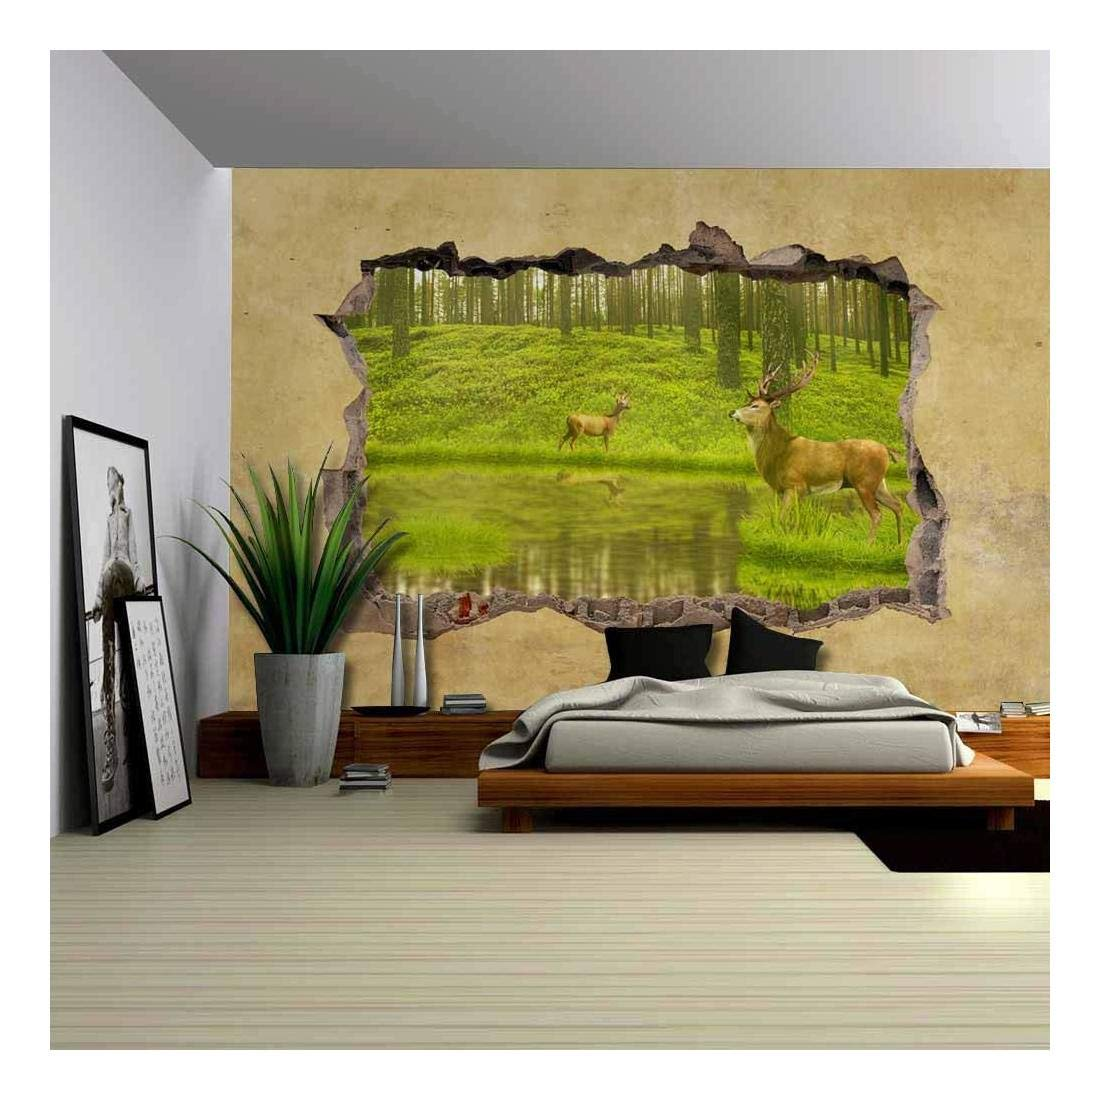 wall26 Deers in the Forest Viewed through a Broken Wall - Large Wall Mural, Removable Peel and Stick Wallpaper, Home Decor - 66x96 inches